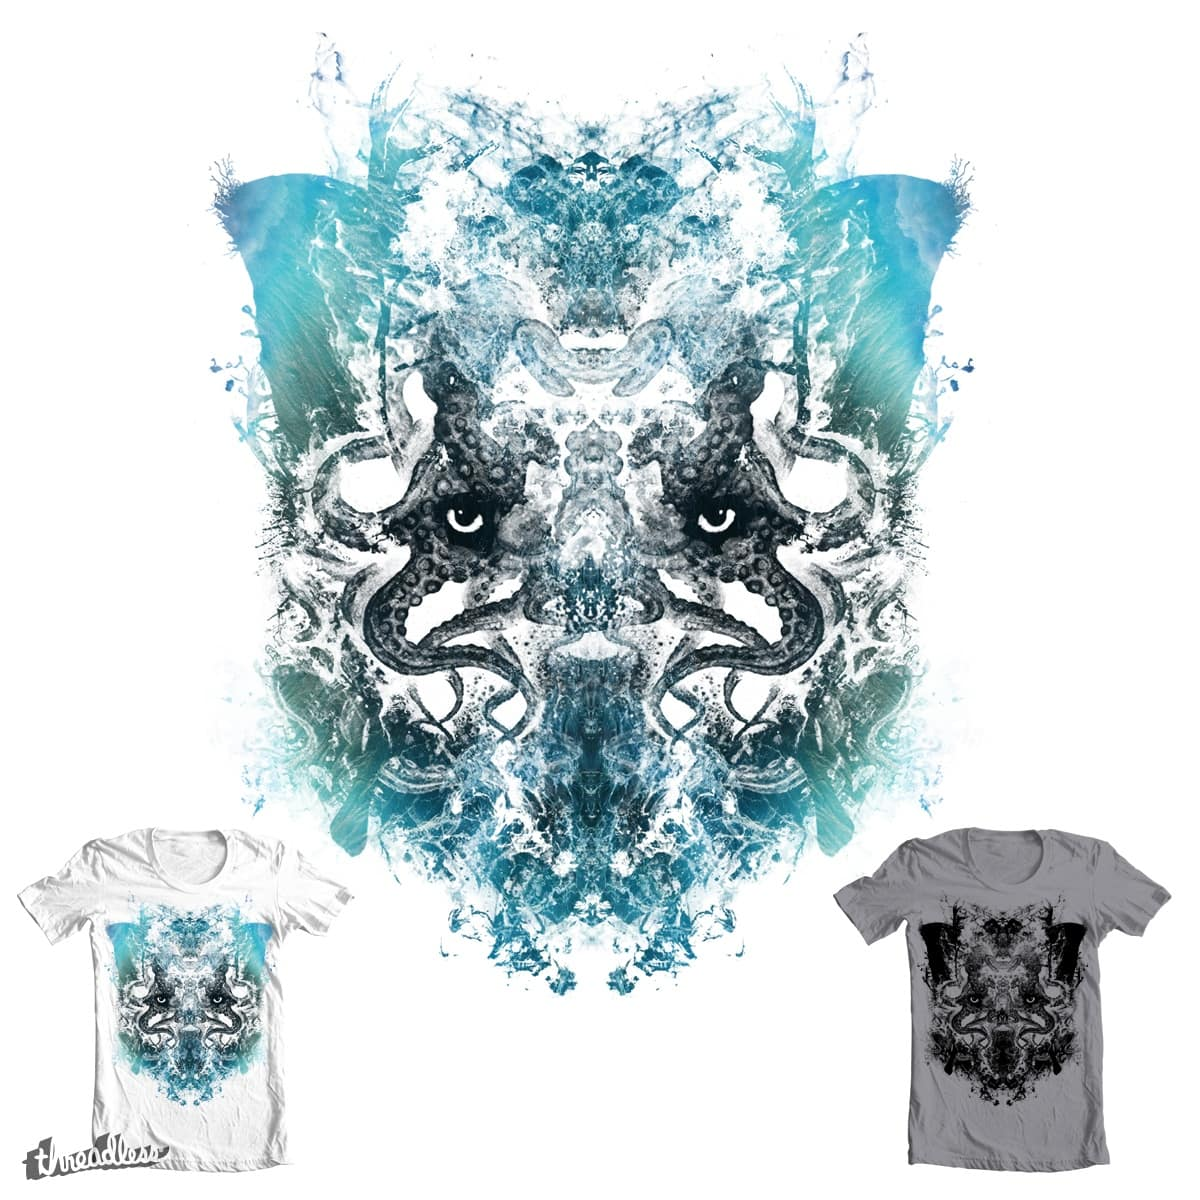 turbulence by thetideconsumesme on Threadless